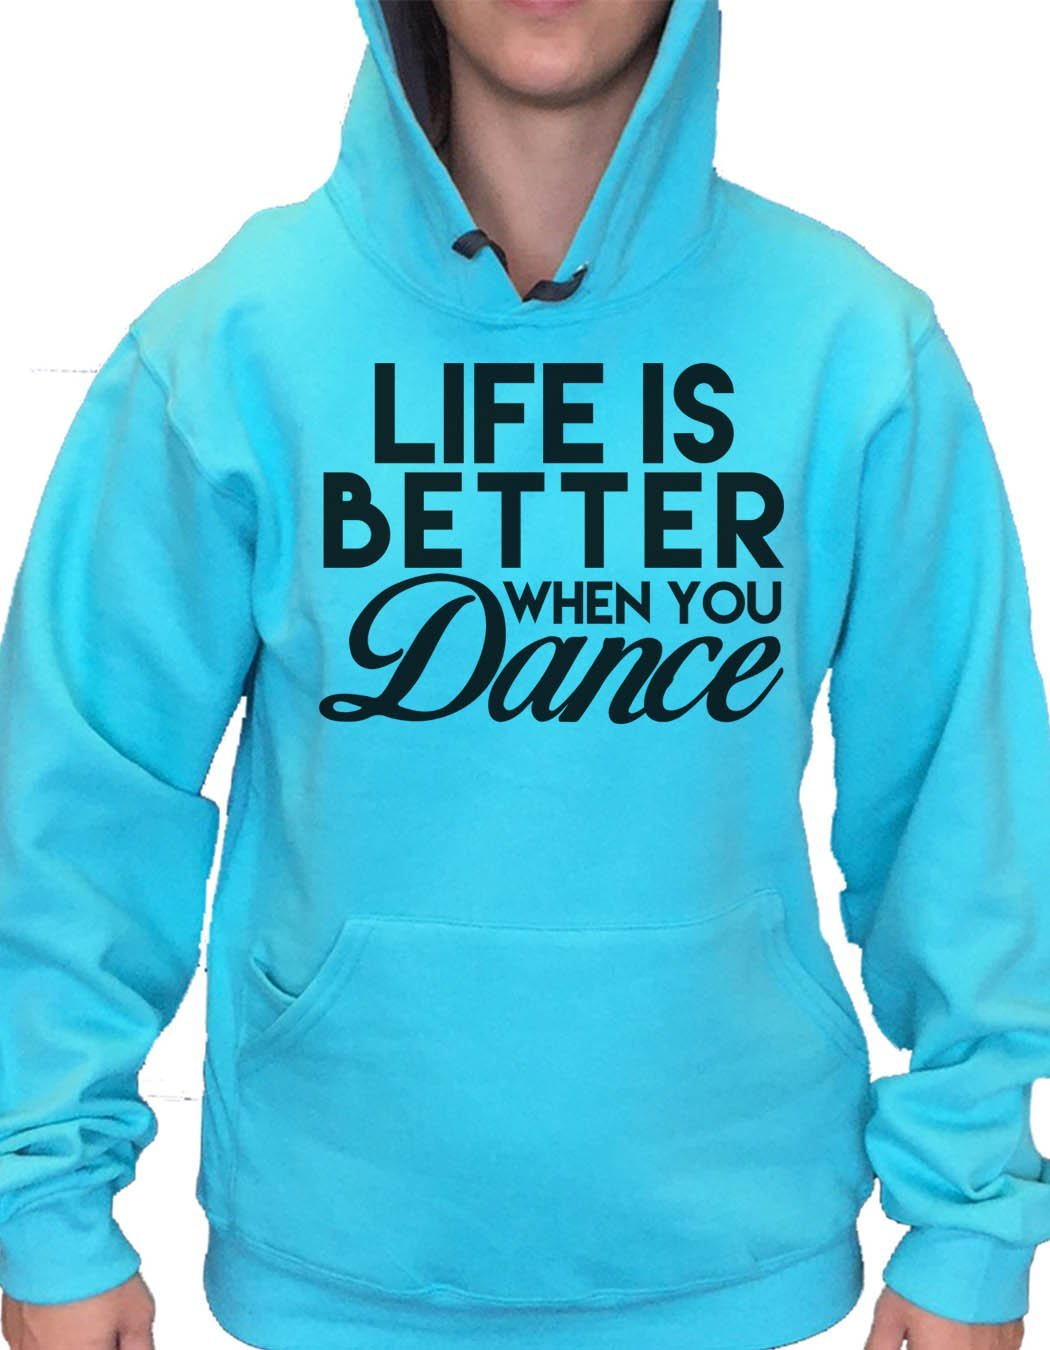 UNISEX HOODIE - Life Is Better When Dance - FUNNY MENS AND WOMENS HOODED SWEATSHIRTS - 2127 Funny Shirt Small / Turquoise